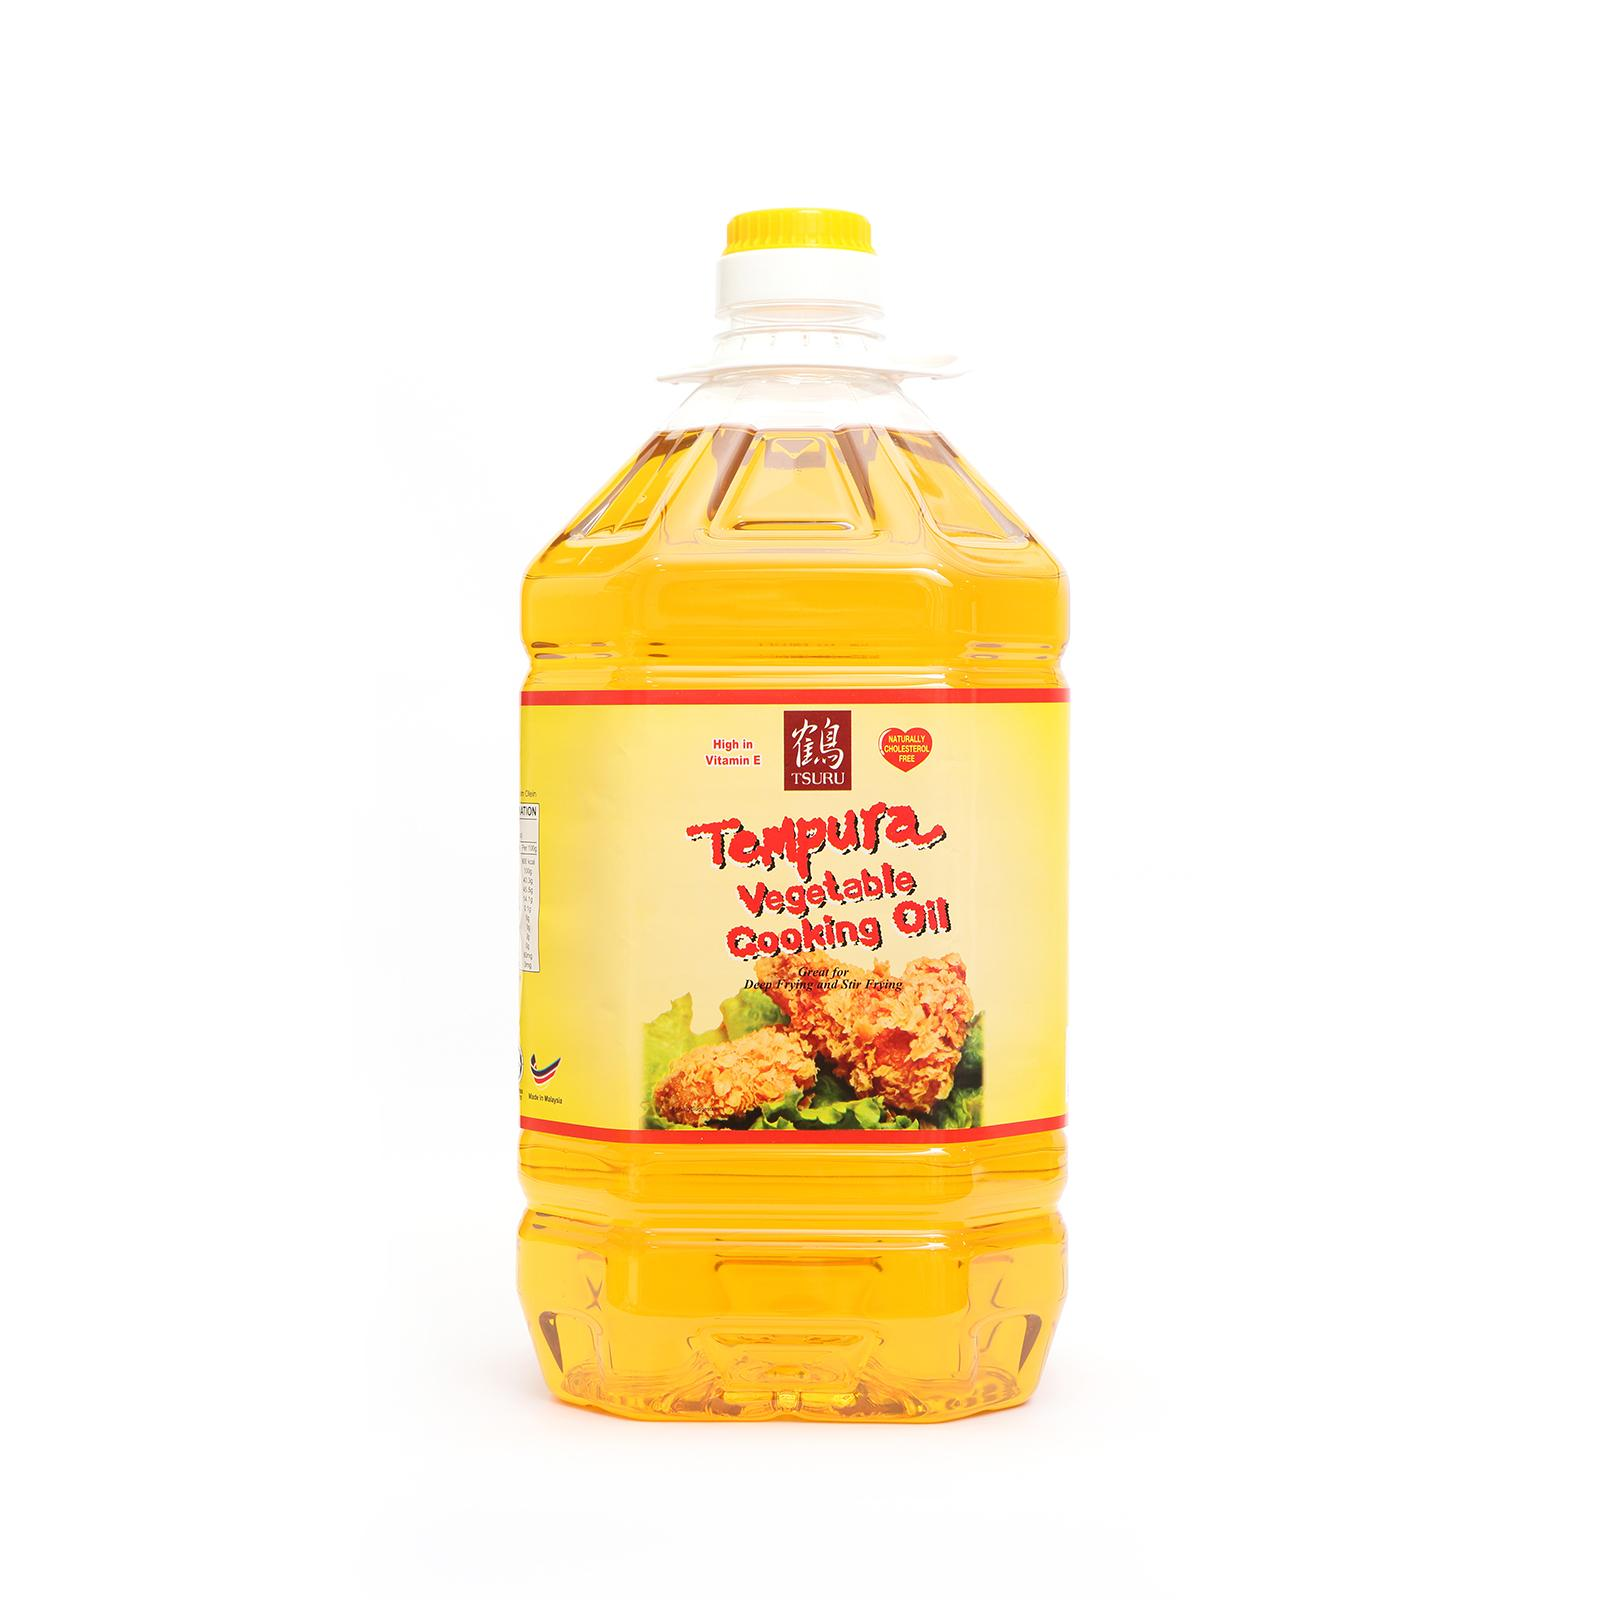 Tsuru Tempura Vegetable Cooking Oil 5l By The Rice Shop.